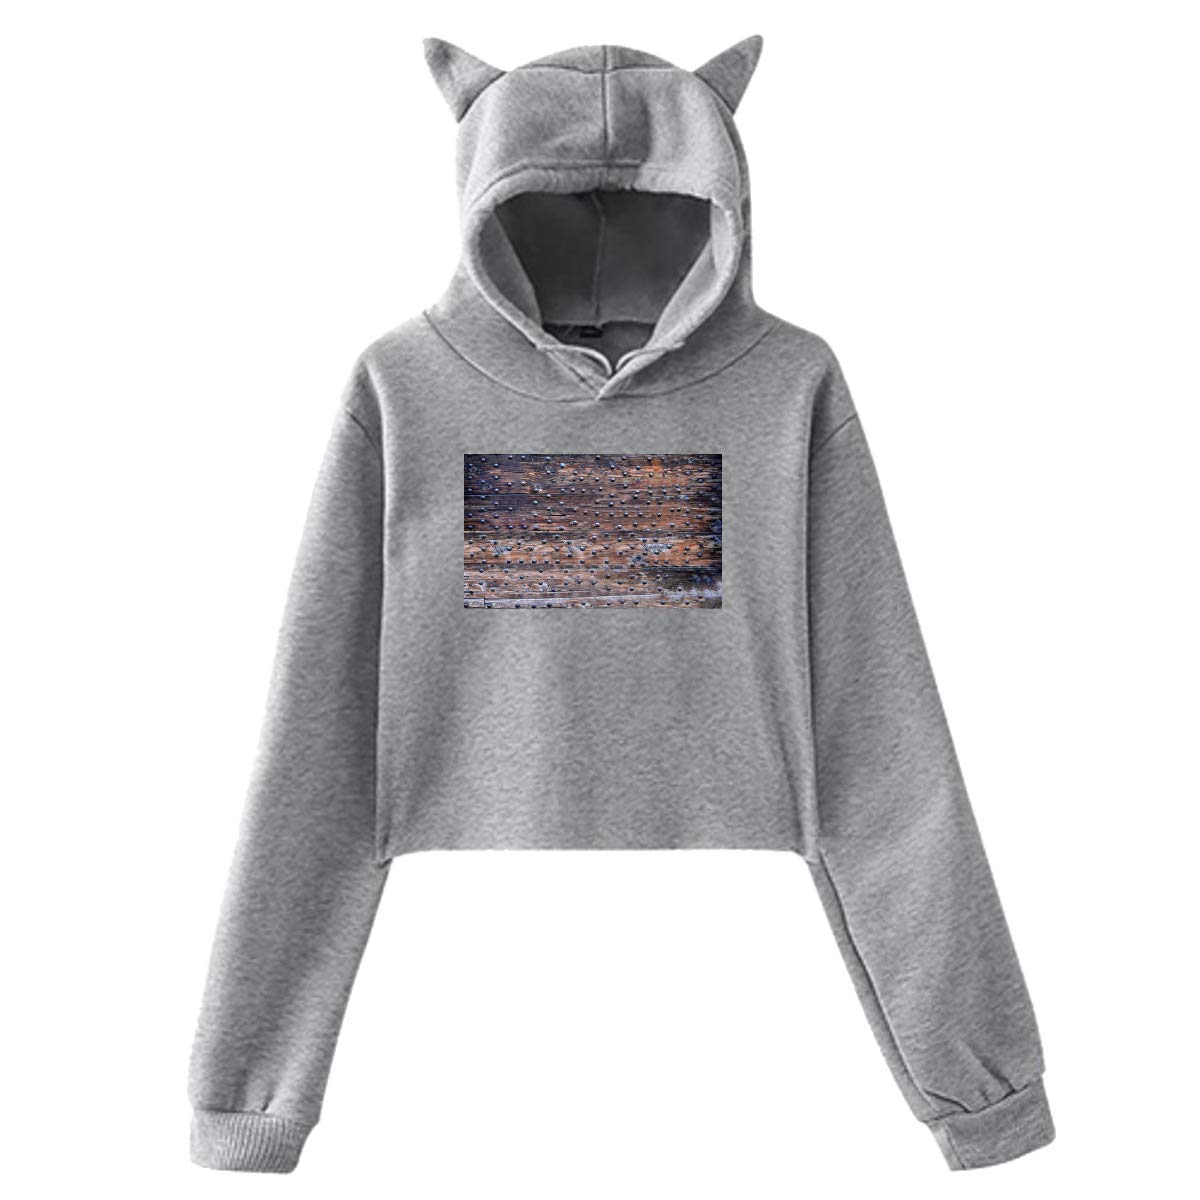 Personality Girl Cat Ears Umbilical Hoodie Fashion Sweatshirt Sweater